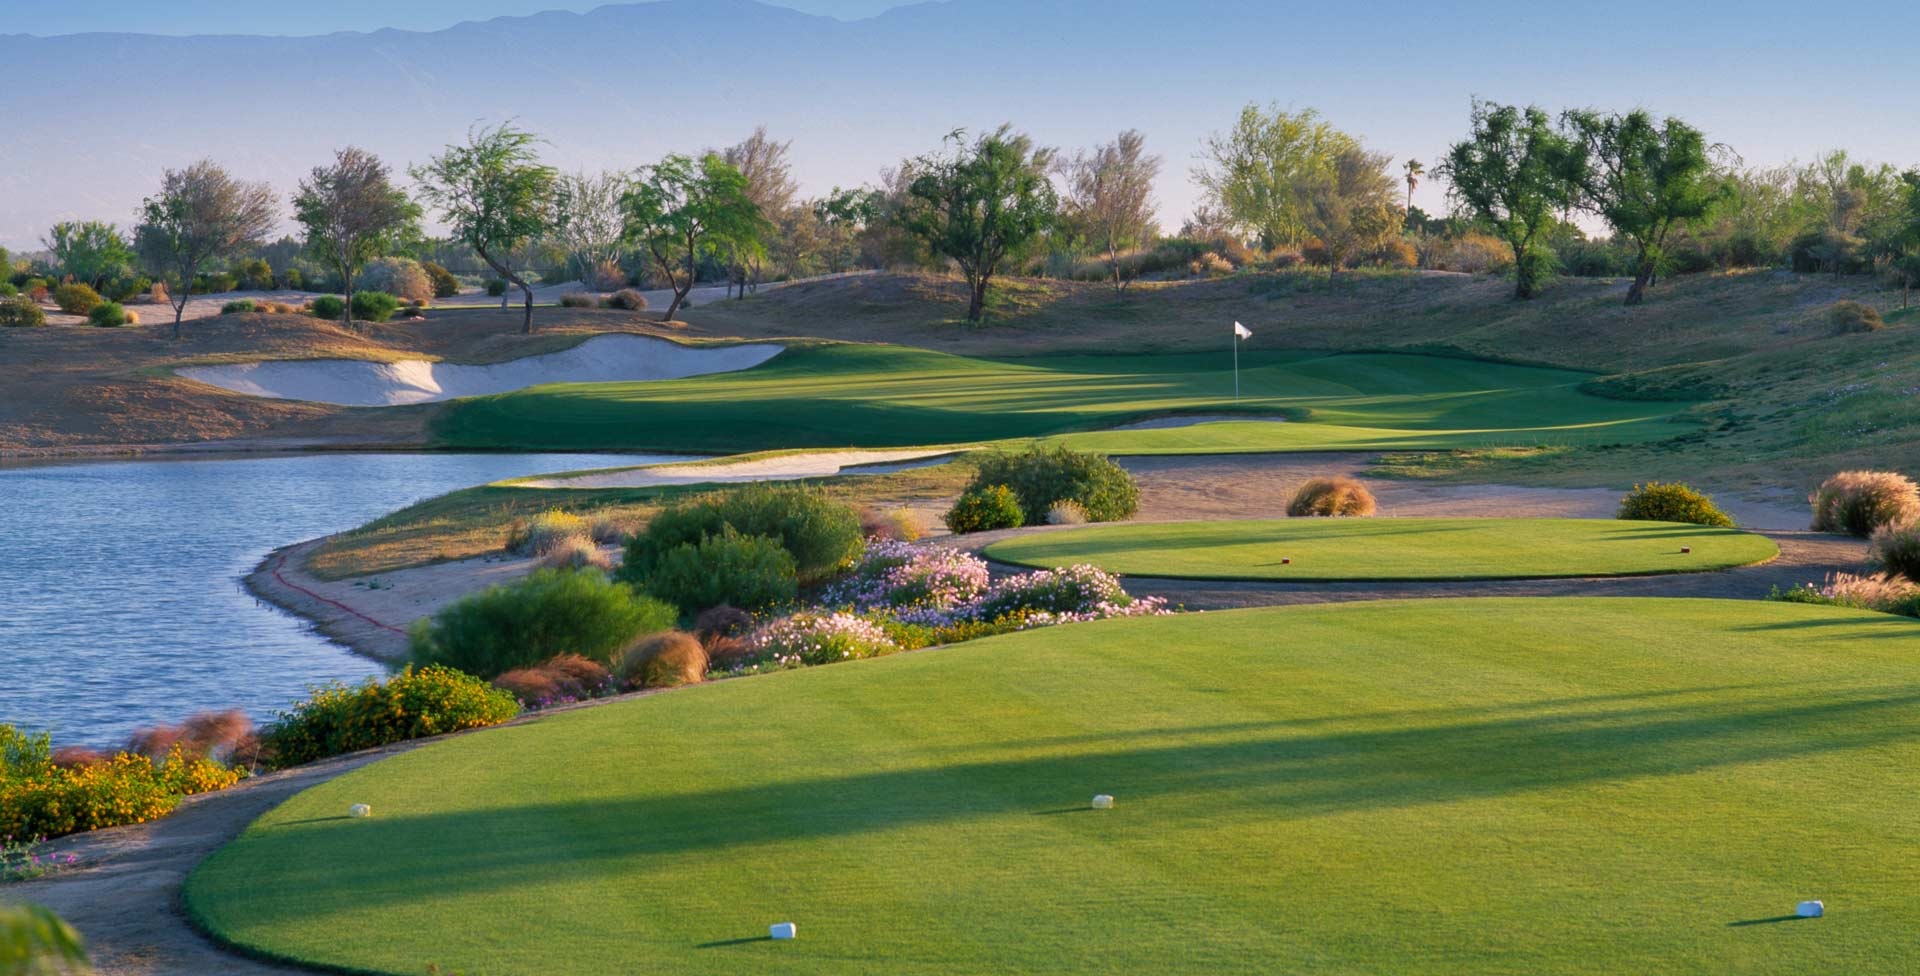 PGA West's Stadium Course